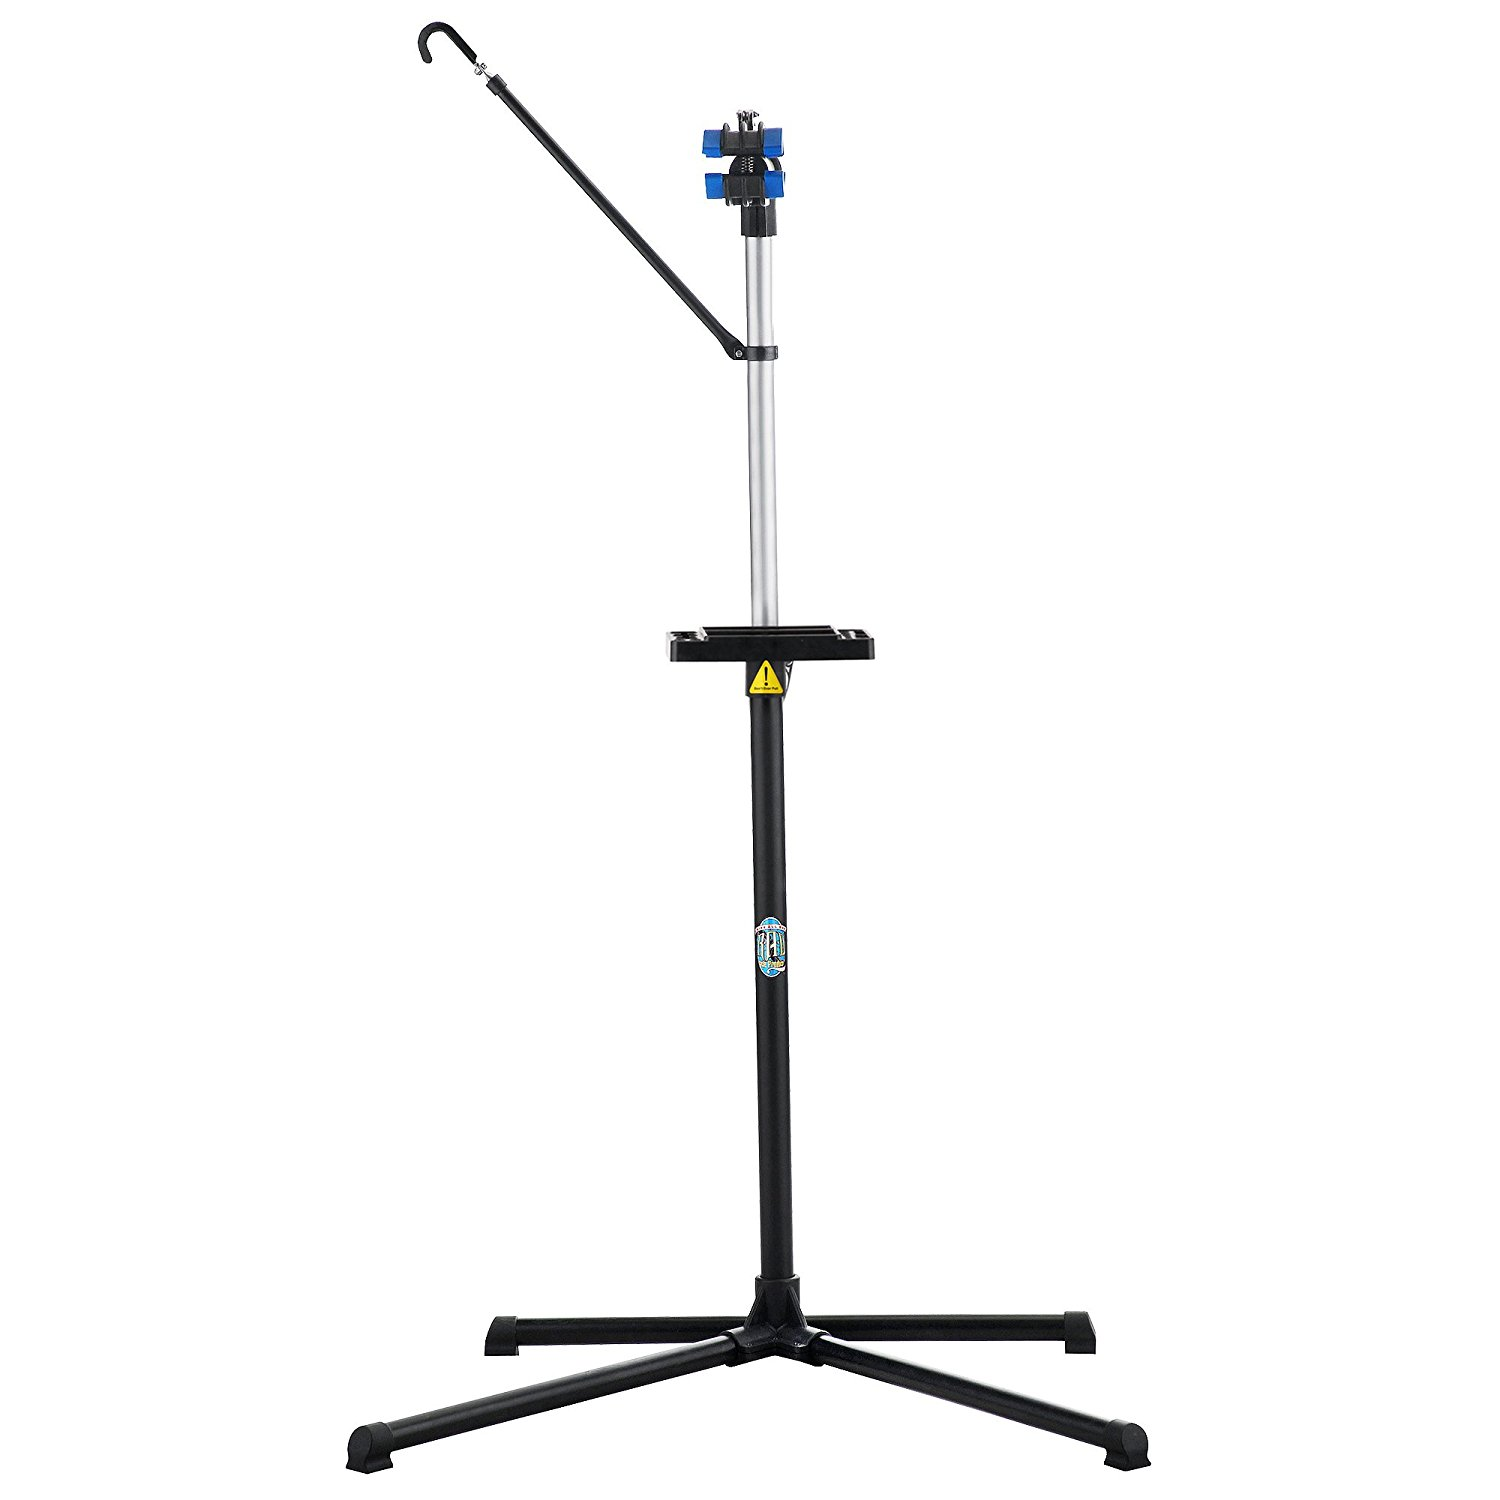 RAD Cycle Products 83-DT5007 Rad Cycle Radical Bike Repair Fully Adjustable Bicycle Stand